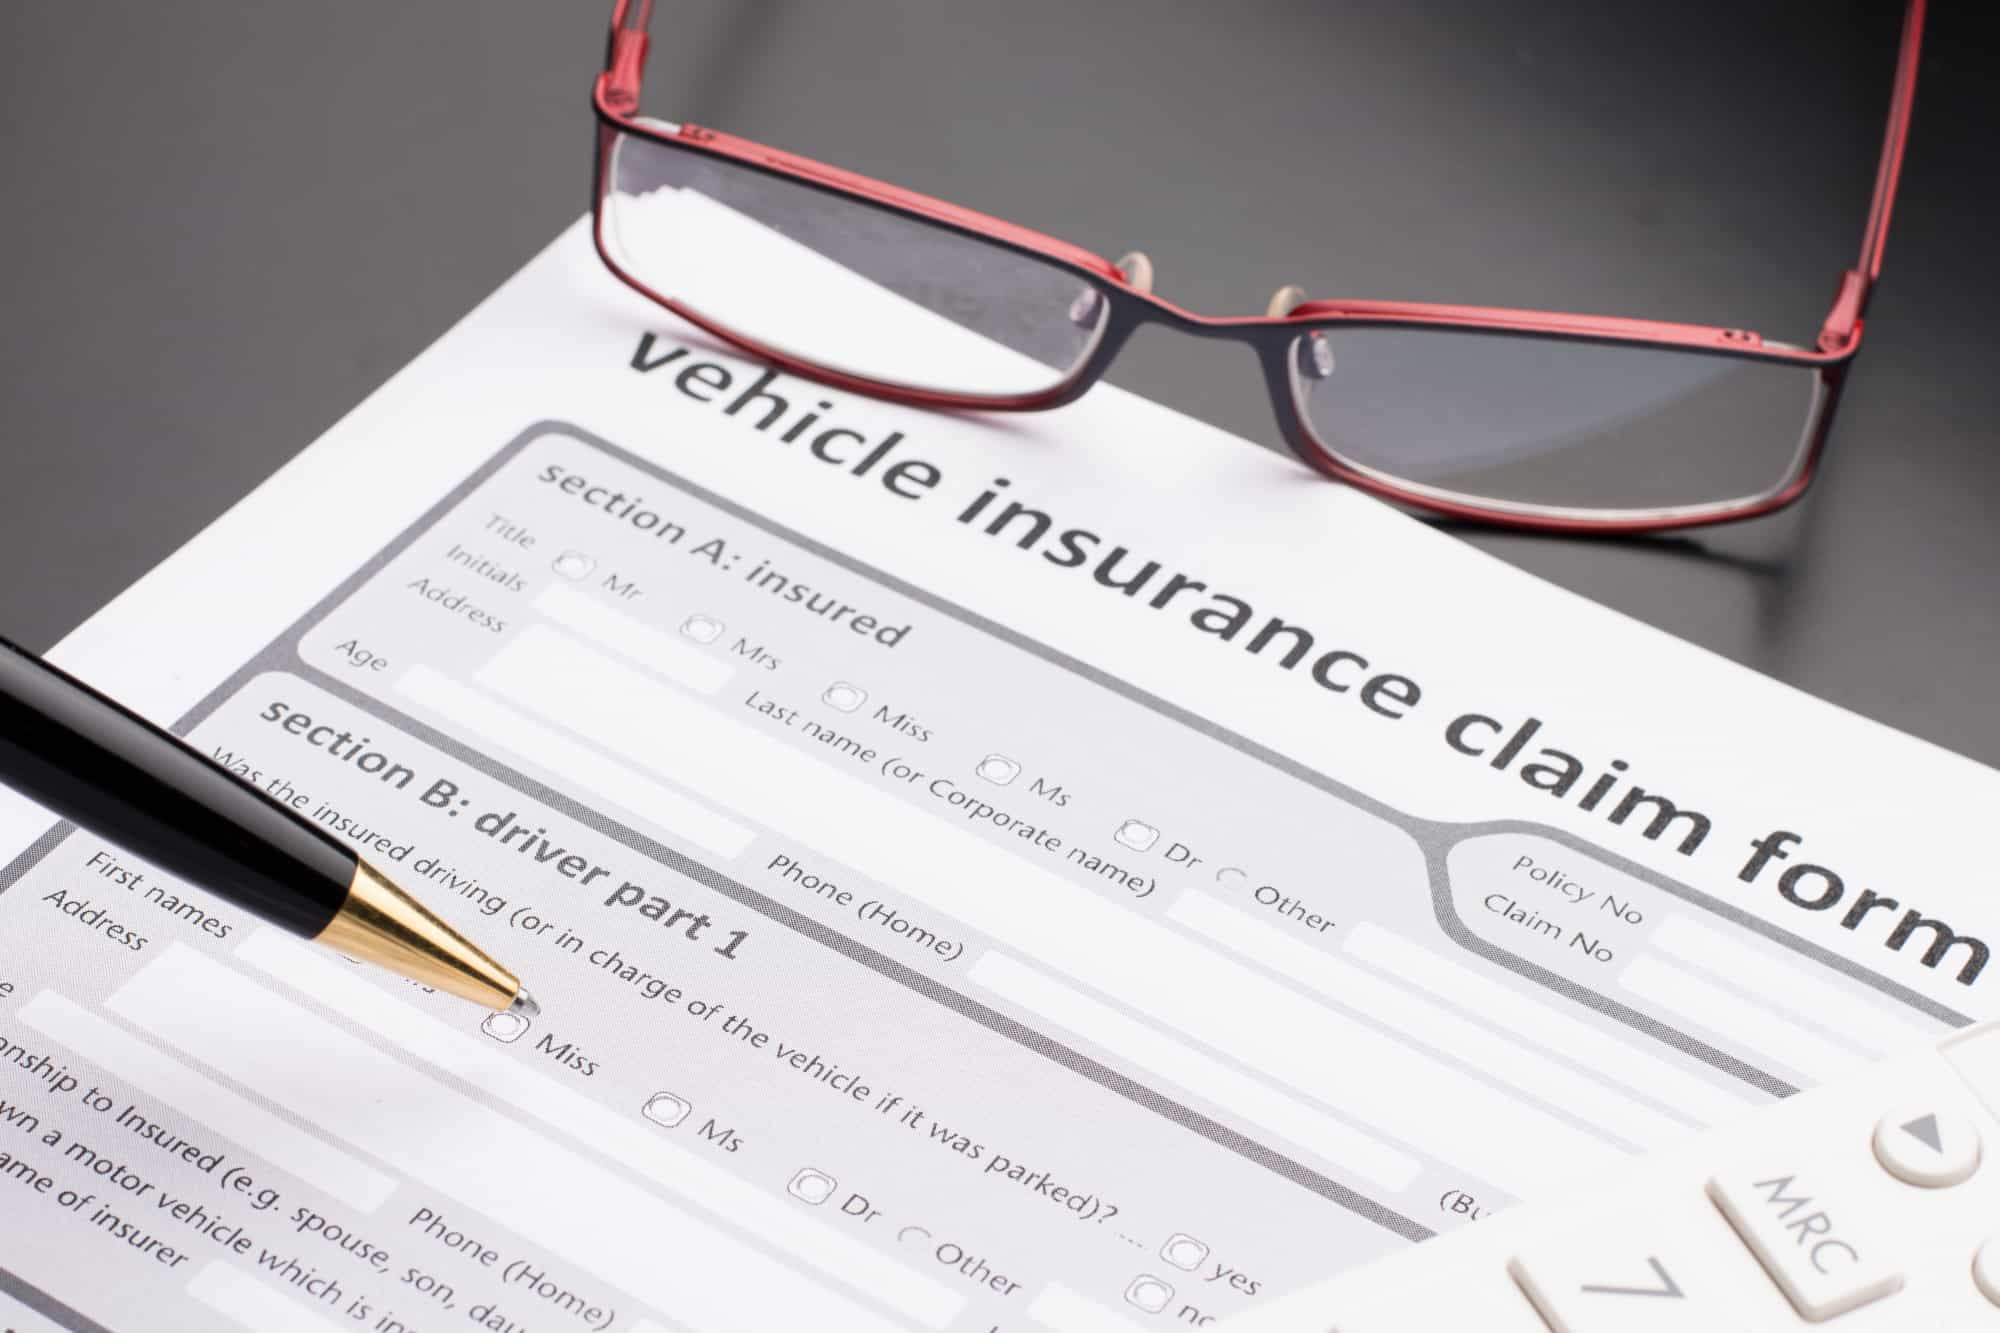 Car insurance claim form with a black lacquer ballpoint pen and red reading glasses.